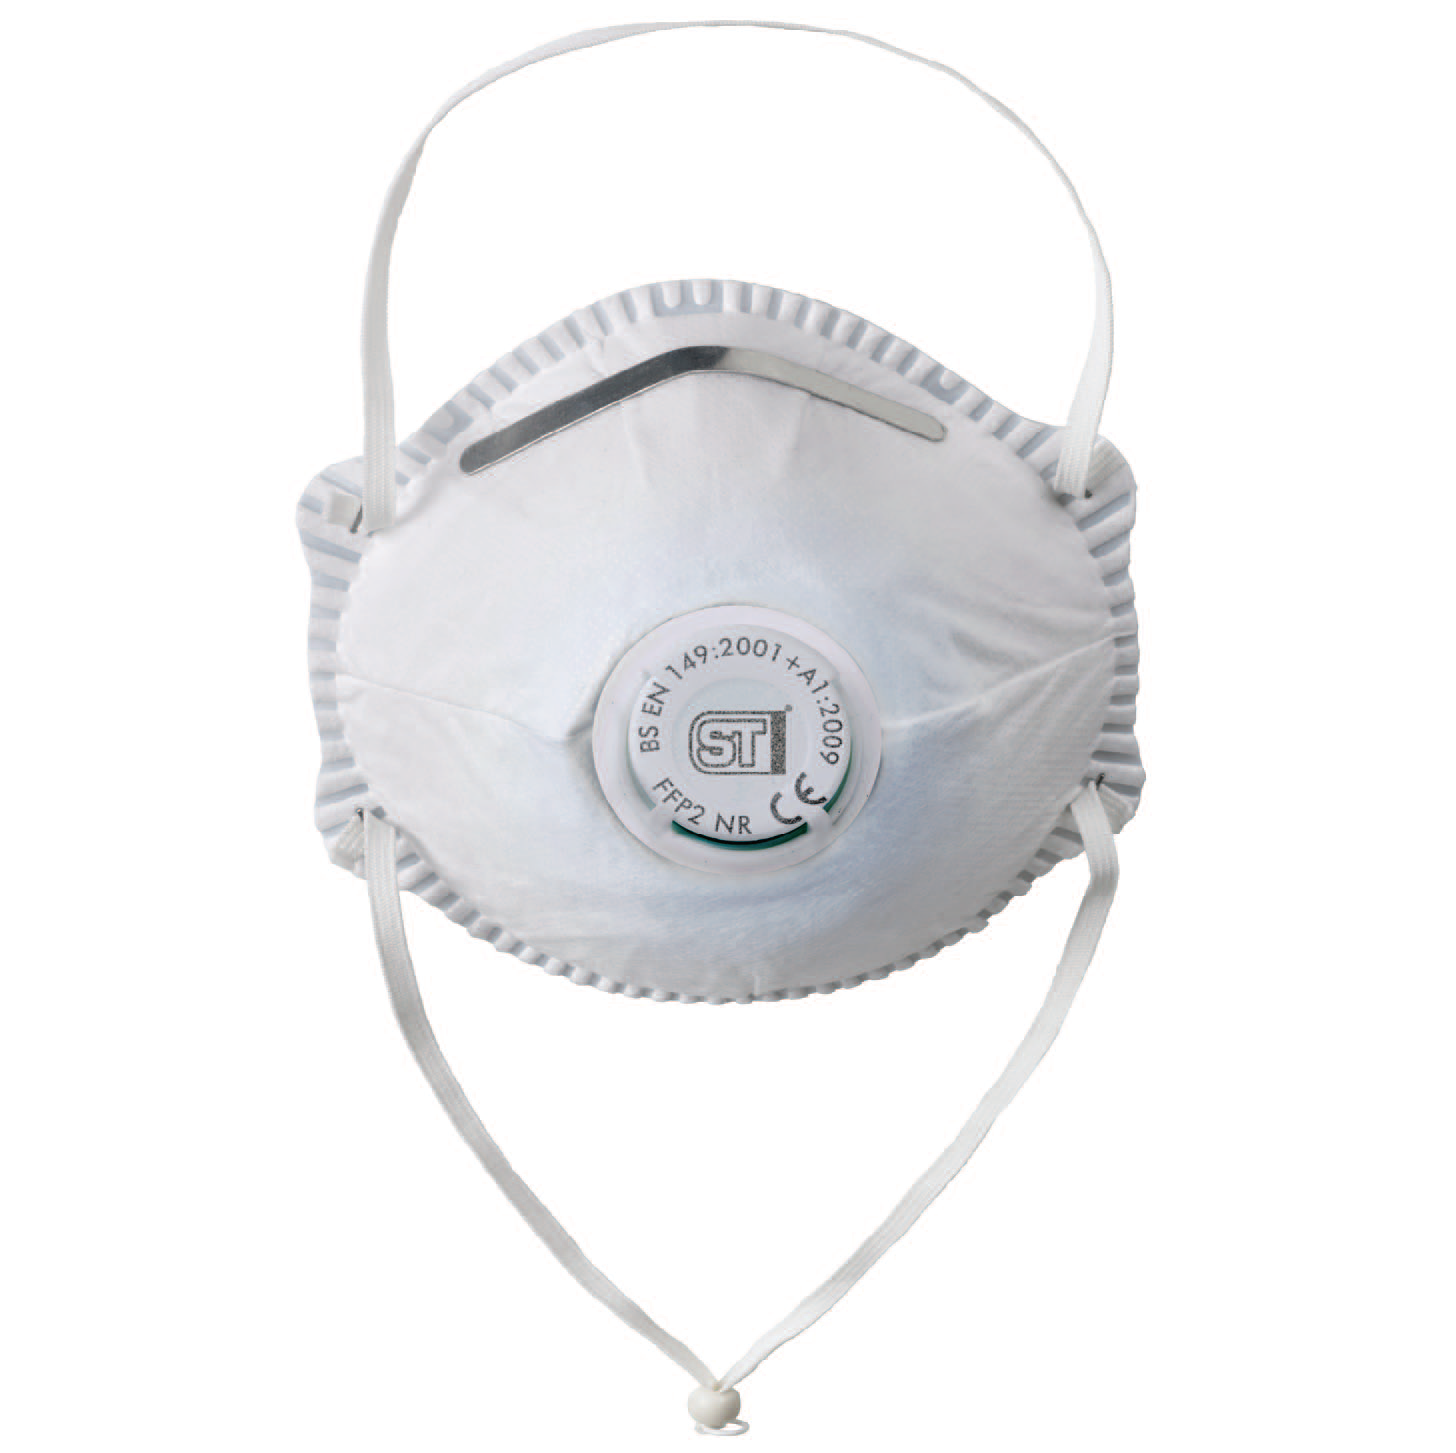 FFP2 Valved Dust mask